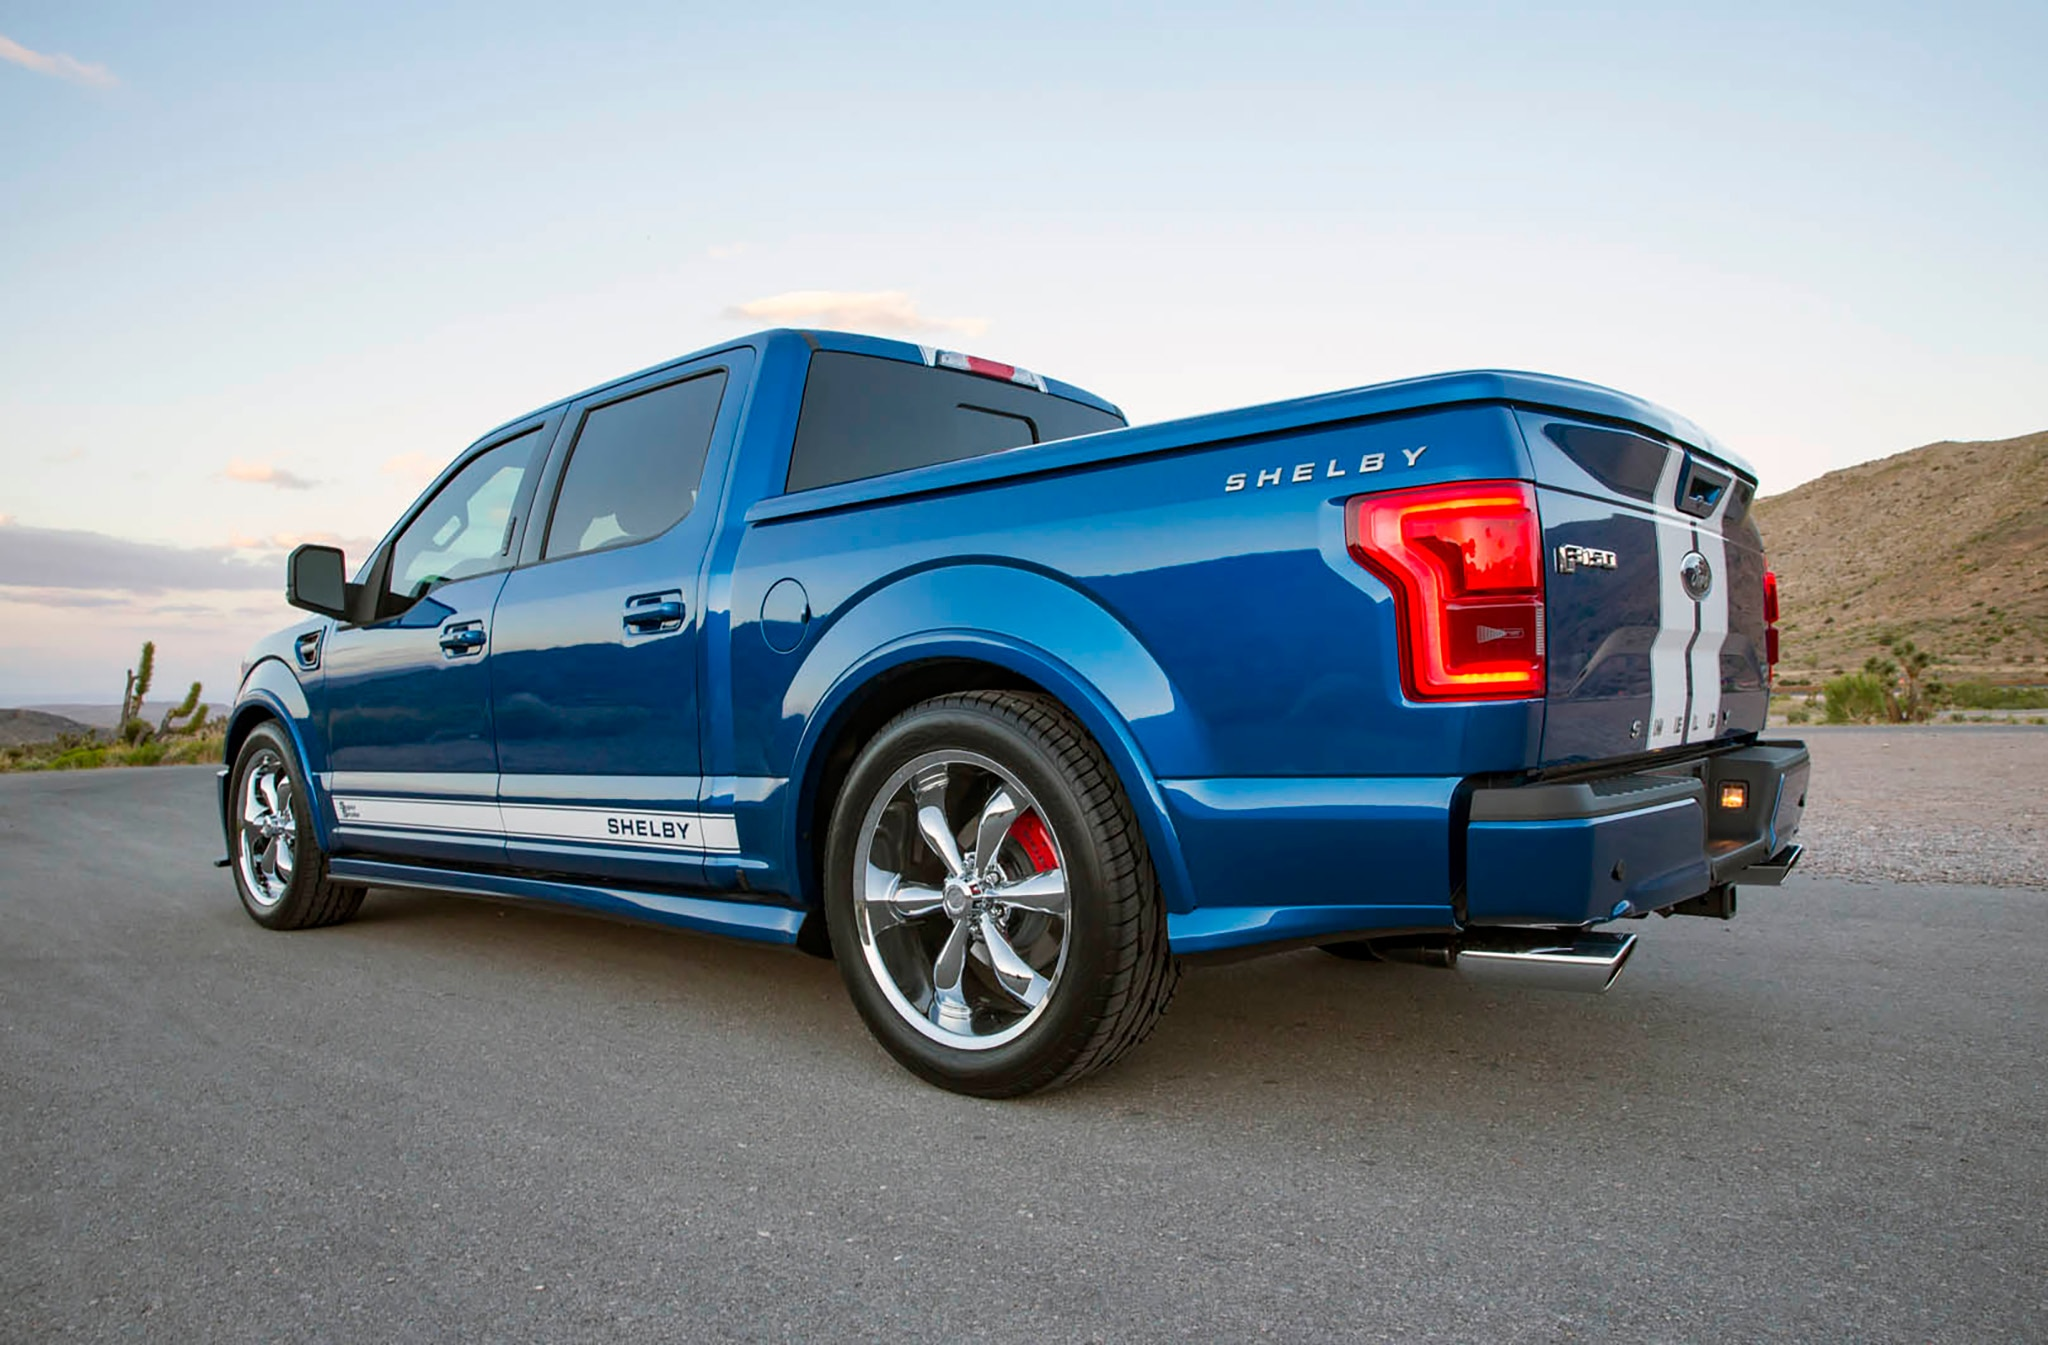 Shelby Truck 2017 >> Shelby F-150 Super Snake Returns for 2017 | Automobile Magazine